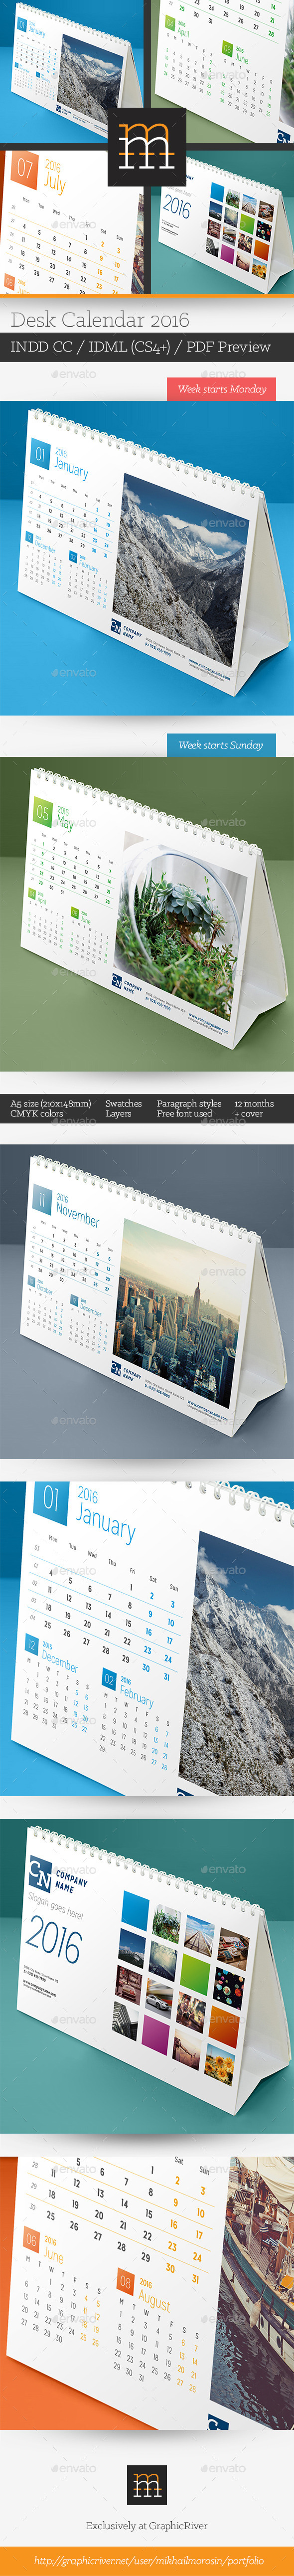 GraphicRiver Desk Calendar 2016 11408180